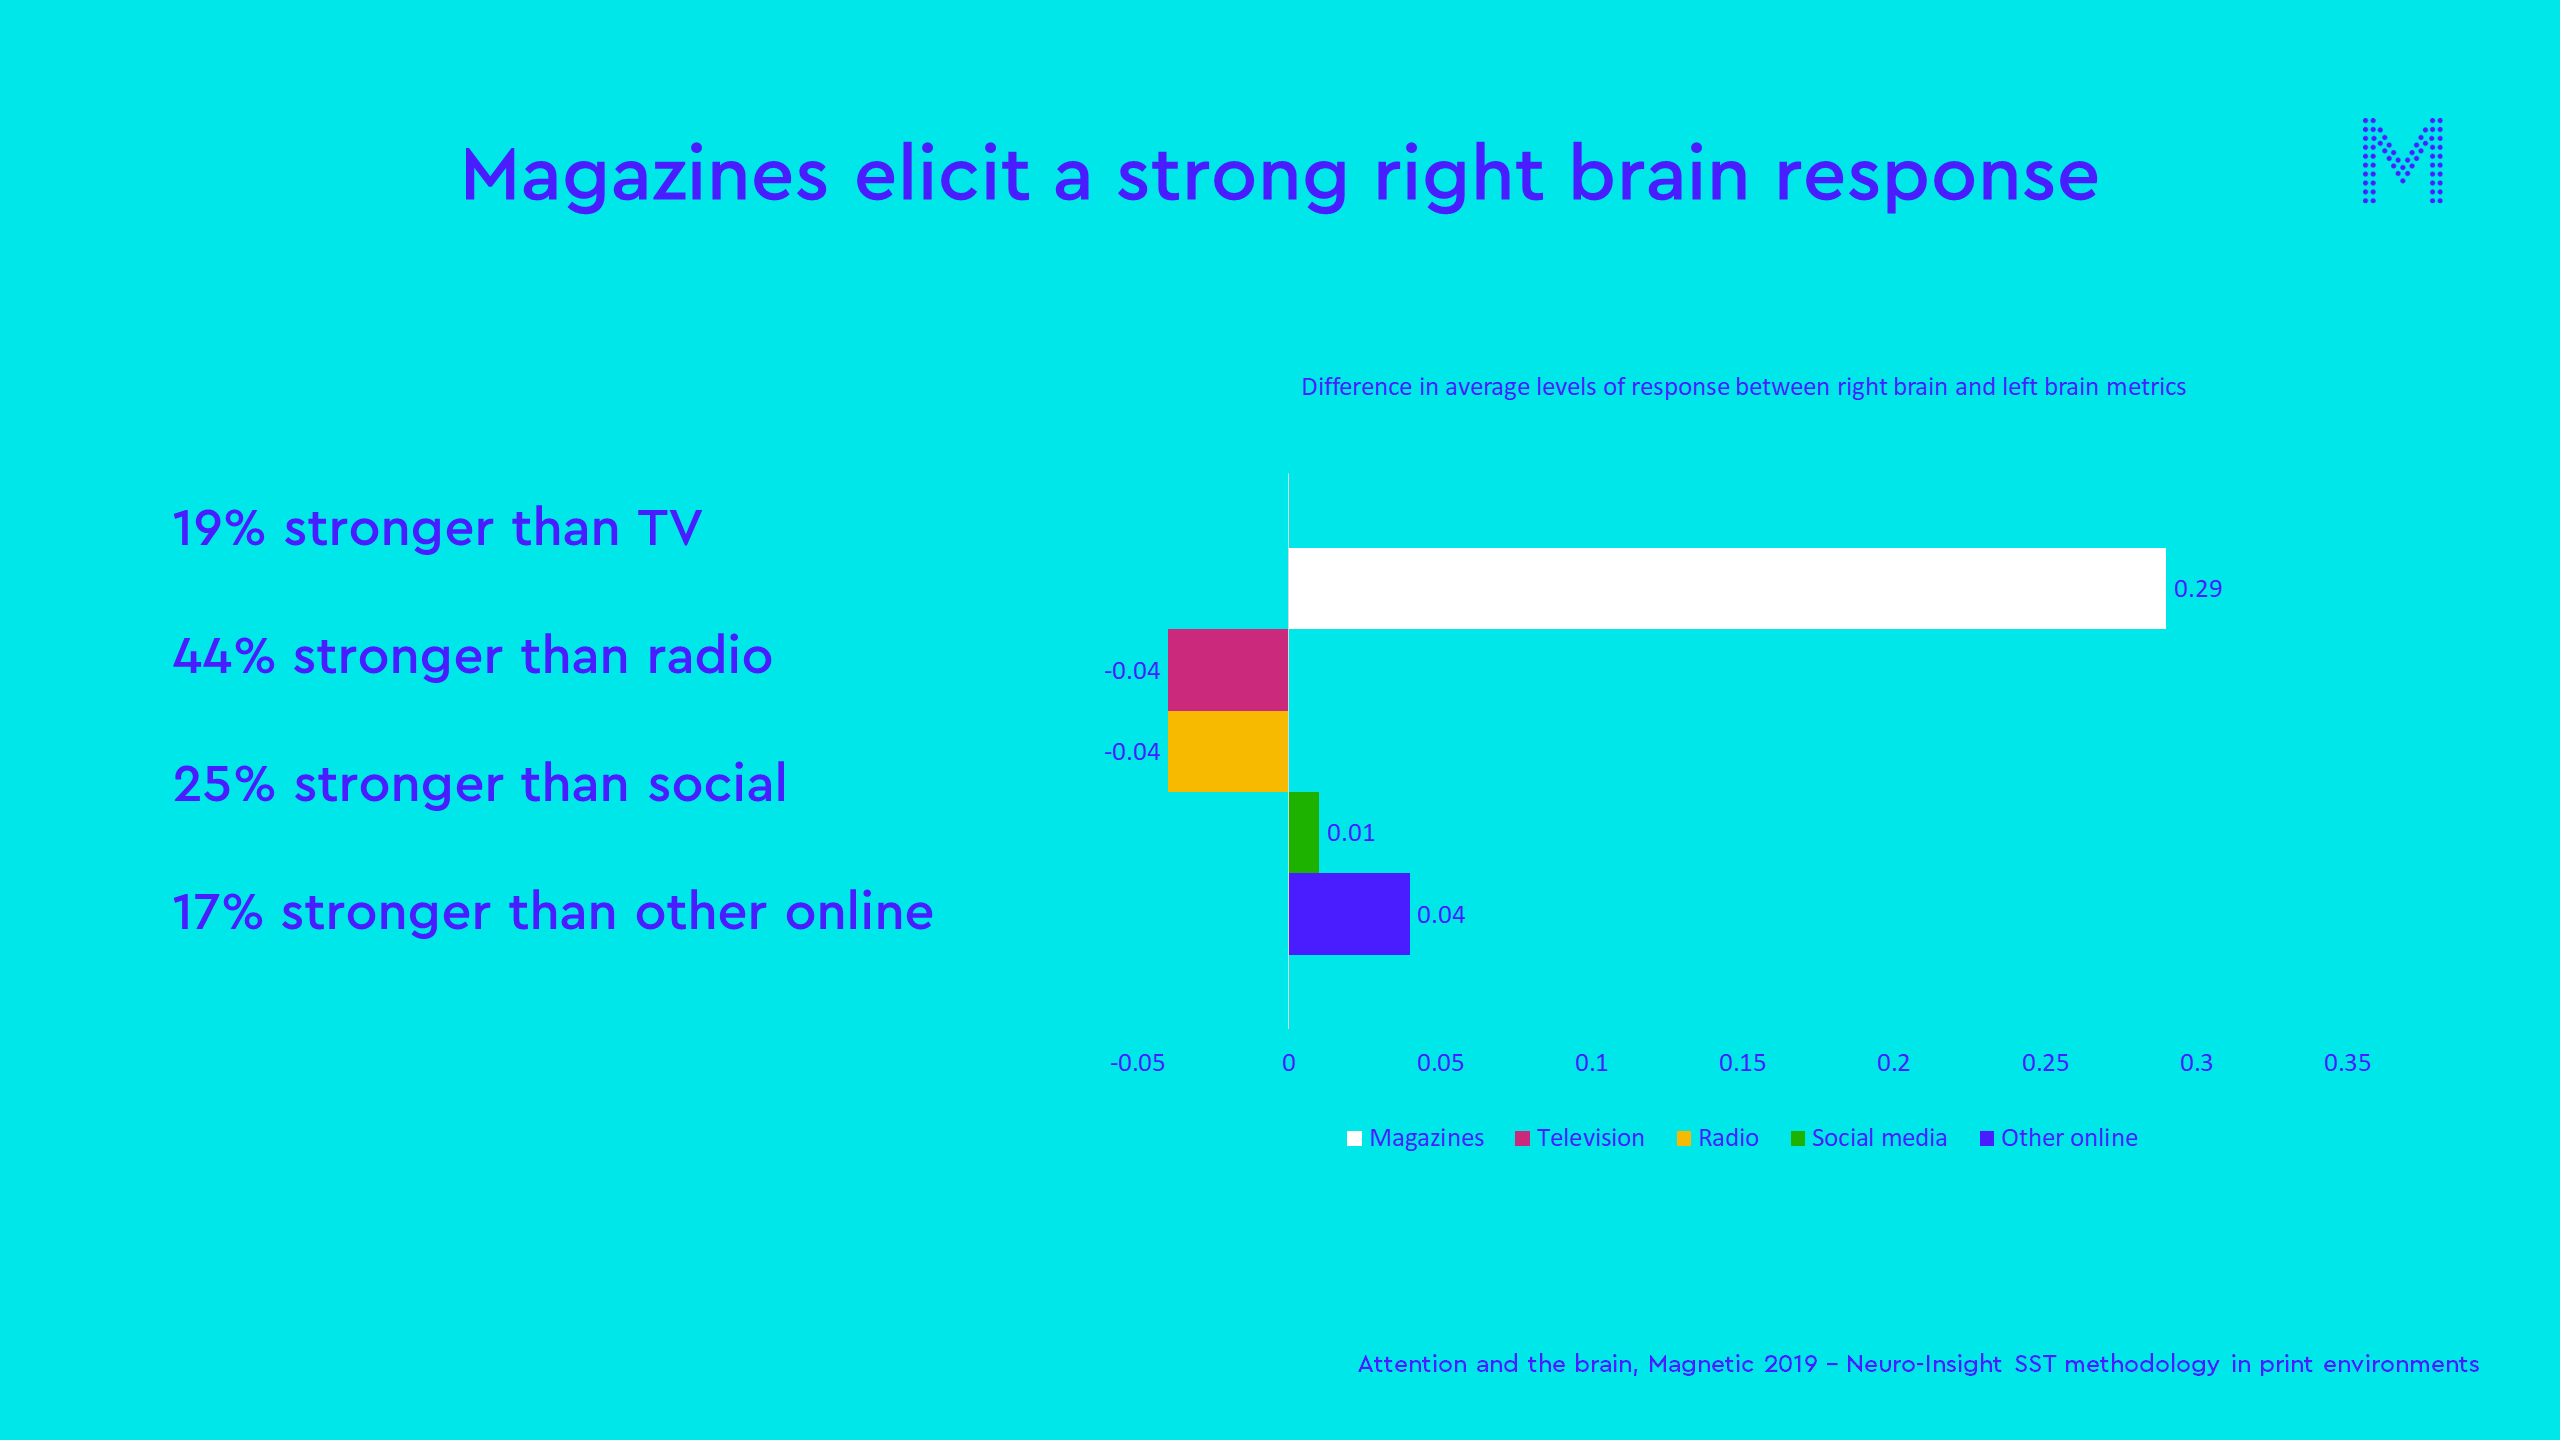 magazines elicit a strong right brain response